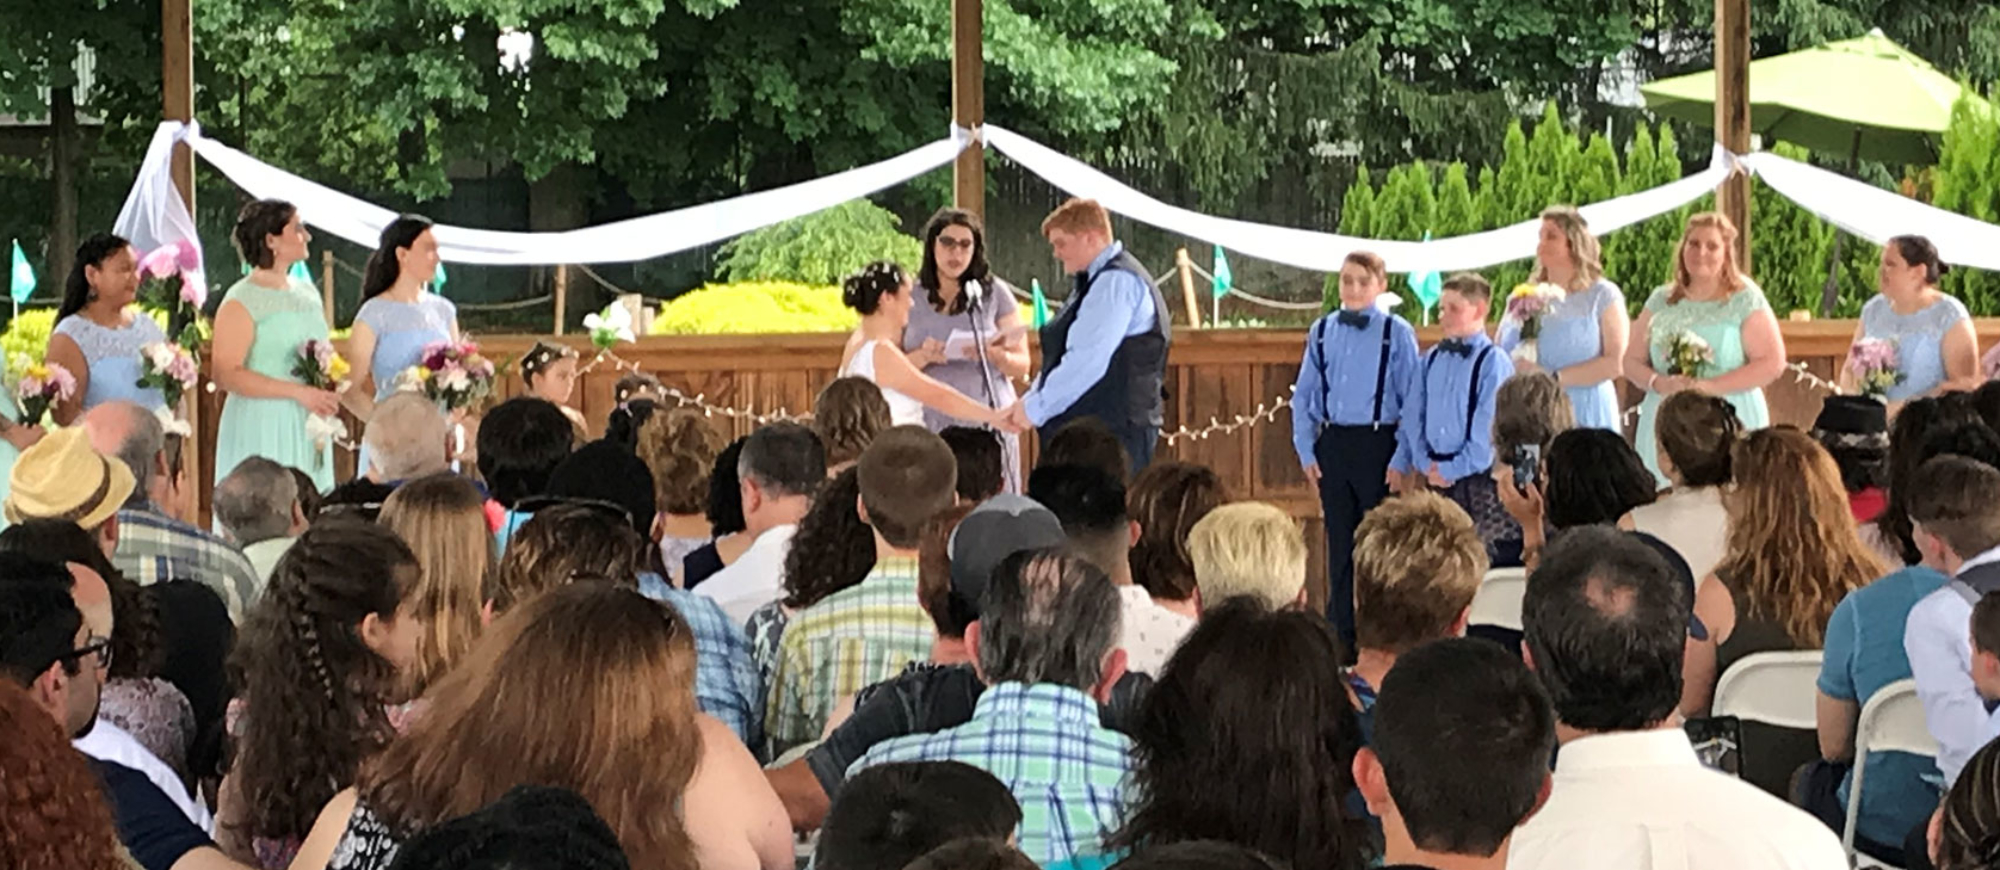 Weddings at Ivy League Day Camp